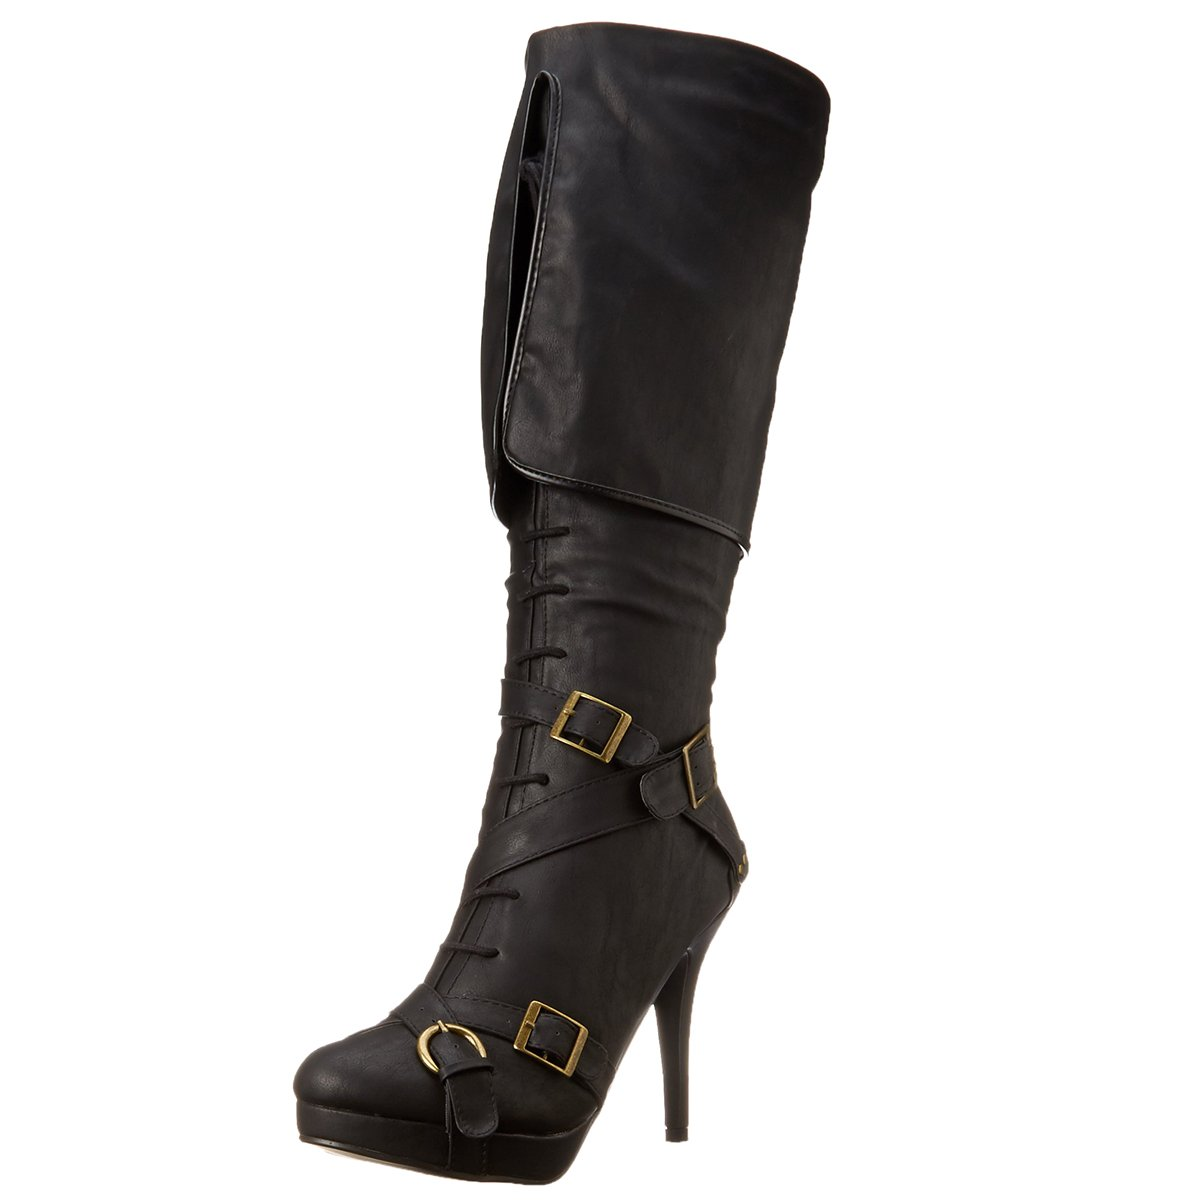 Women's Black Knee-High Fold Over Strappy Pirate Boots - DeluxeAdultCostumes.com